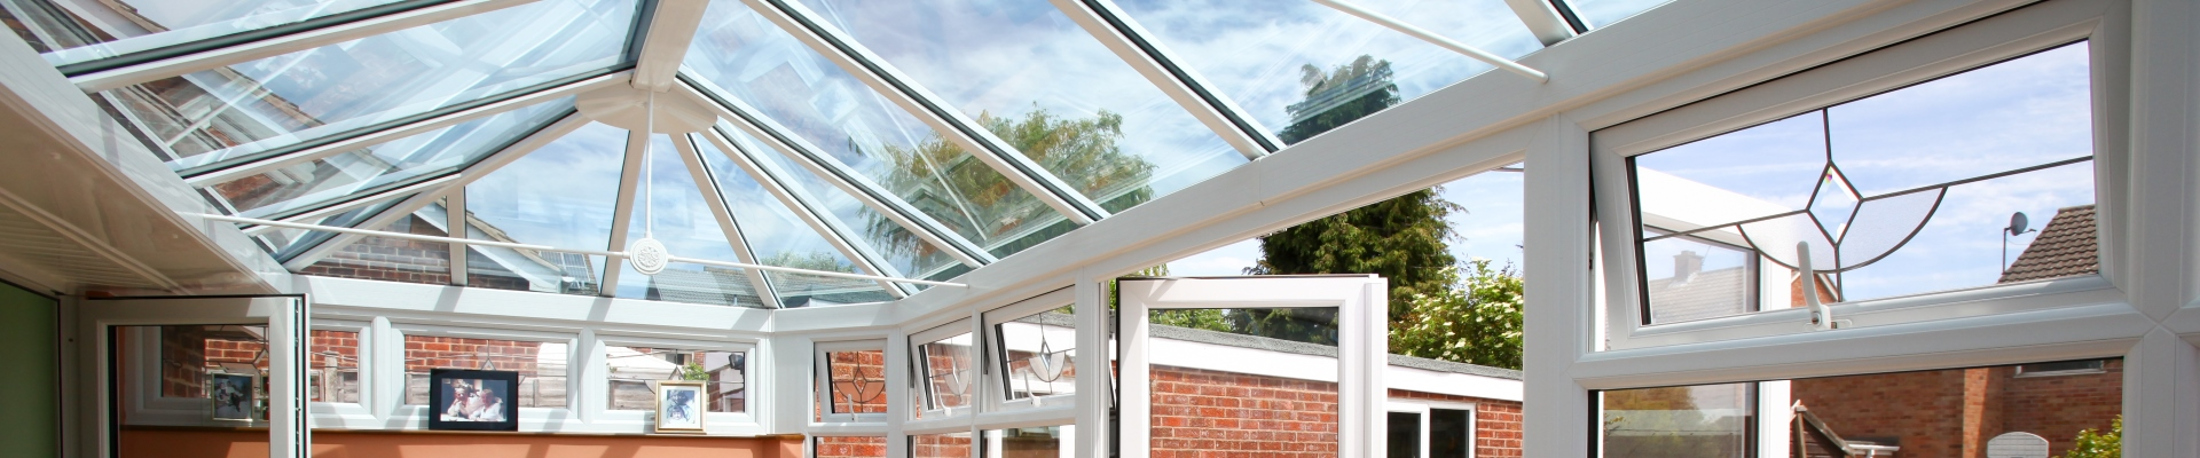 Conservatory Roofs now available through DGS